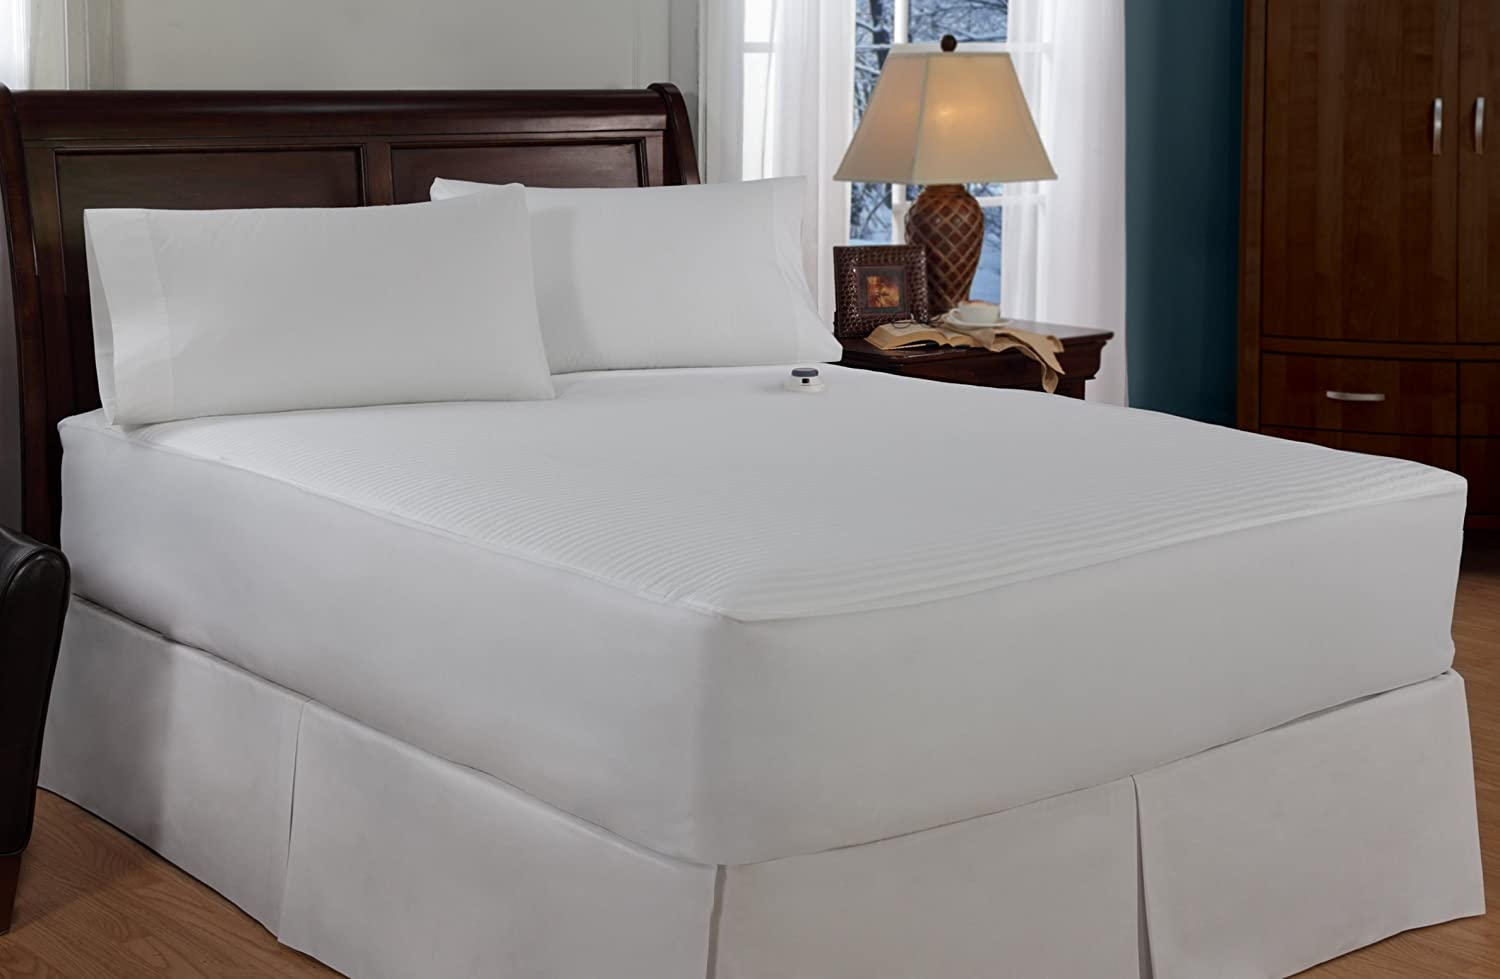 Serta Damask Stripe Electric Heated Mattress Pad - Start saving on your  energy bill when you lower your thermostat and stay comfy with the all over  ...